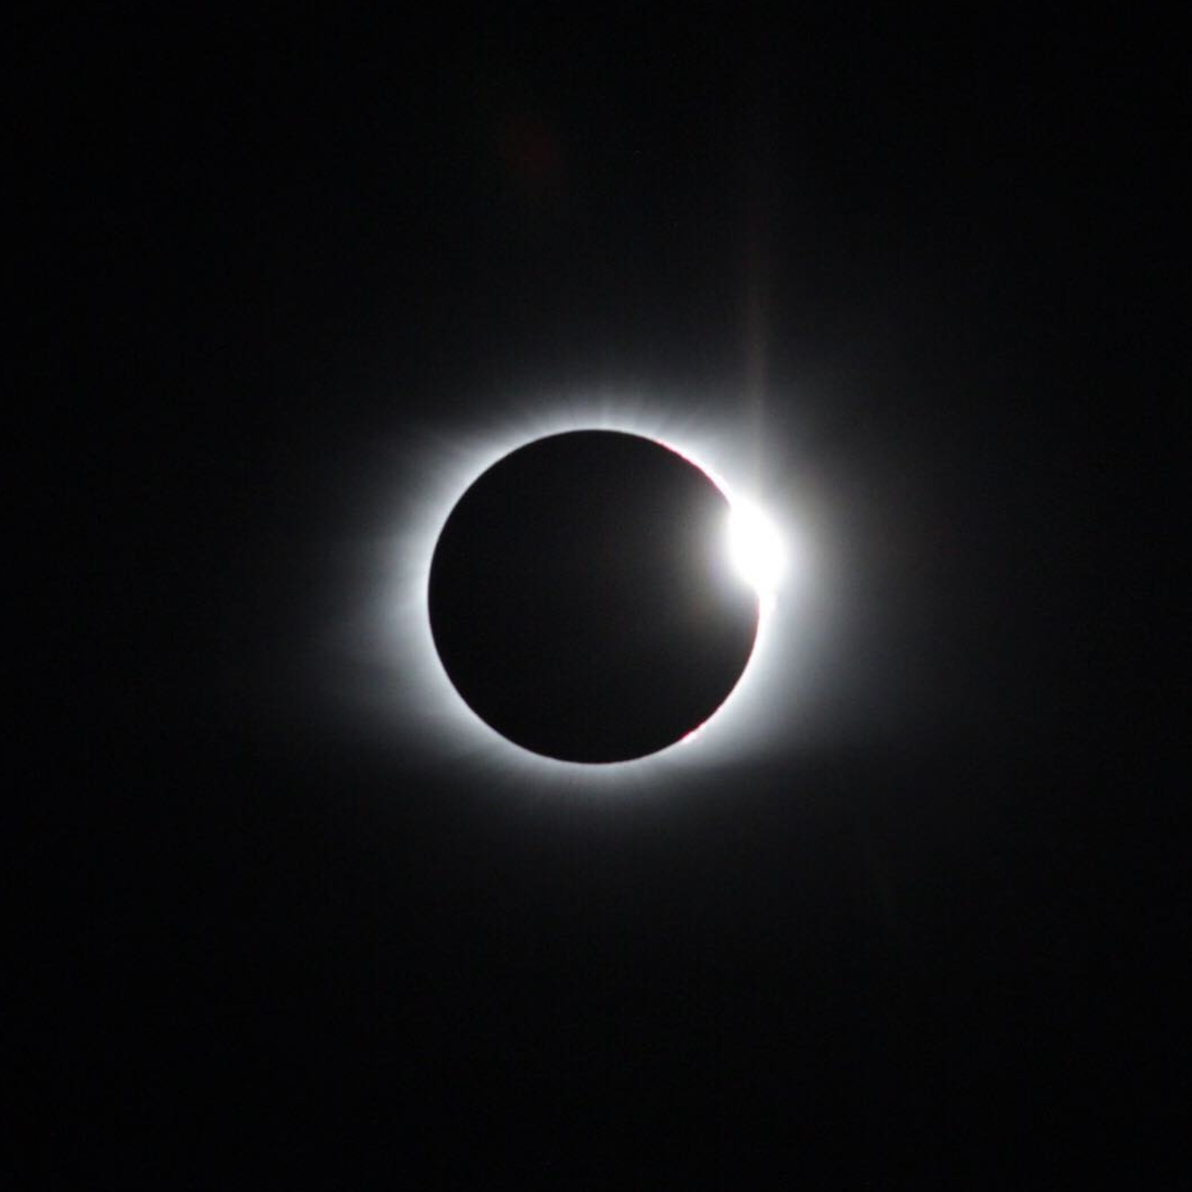 One of Karl's shots from the eclipse on 8/21/17 ( Instagram )